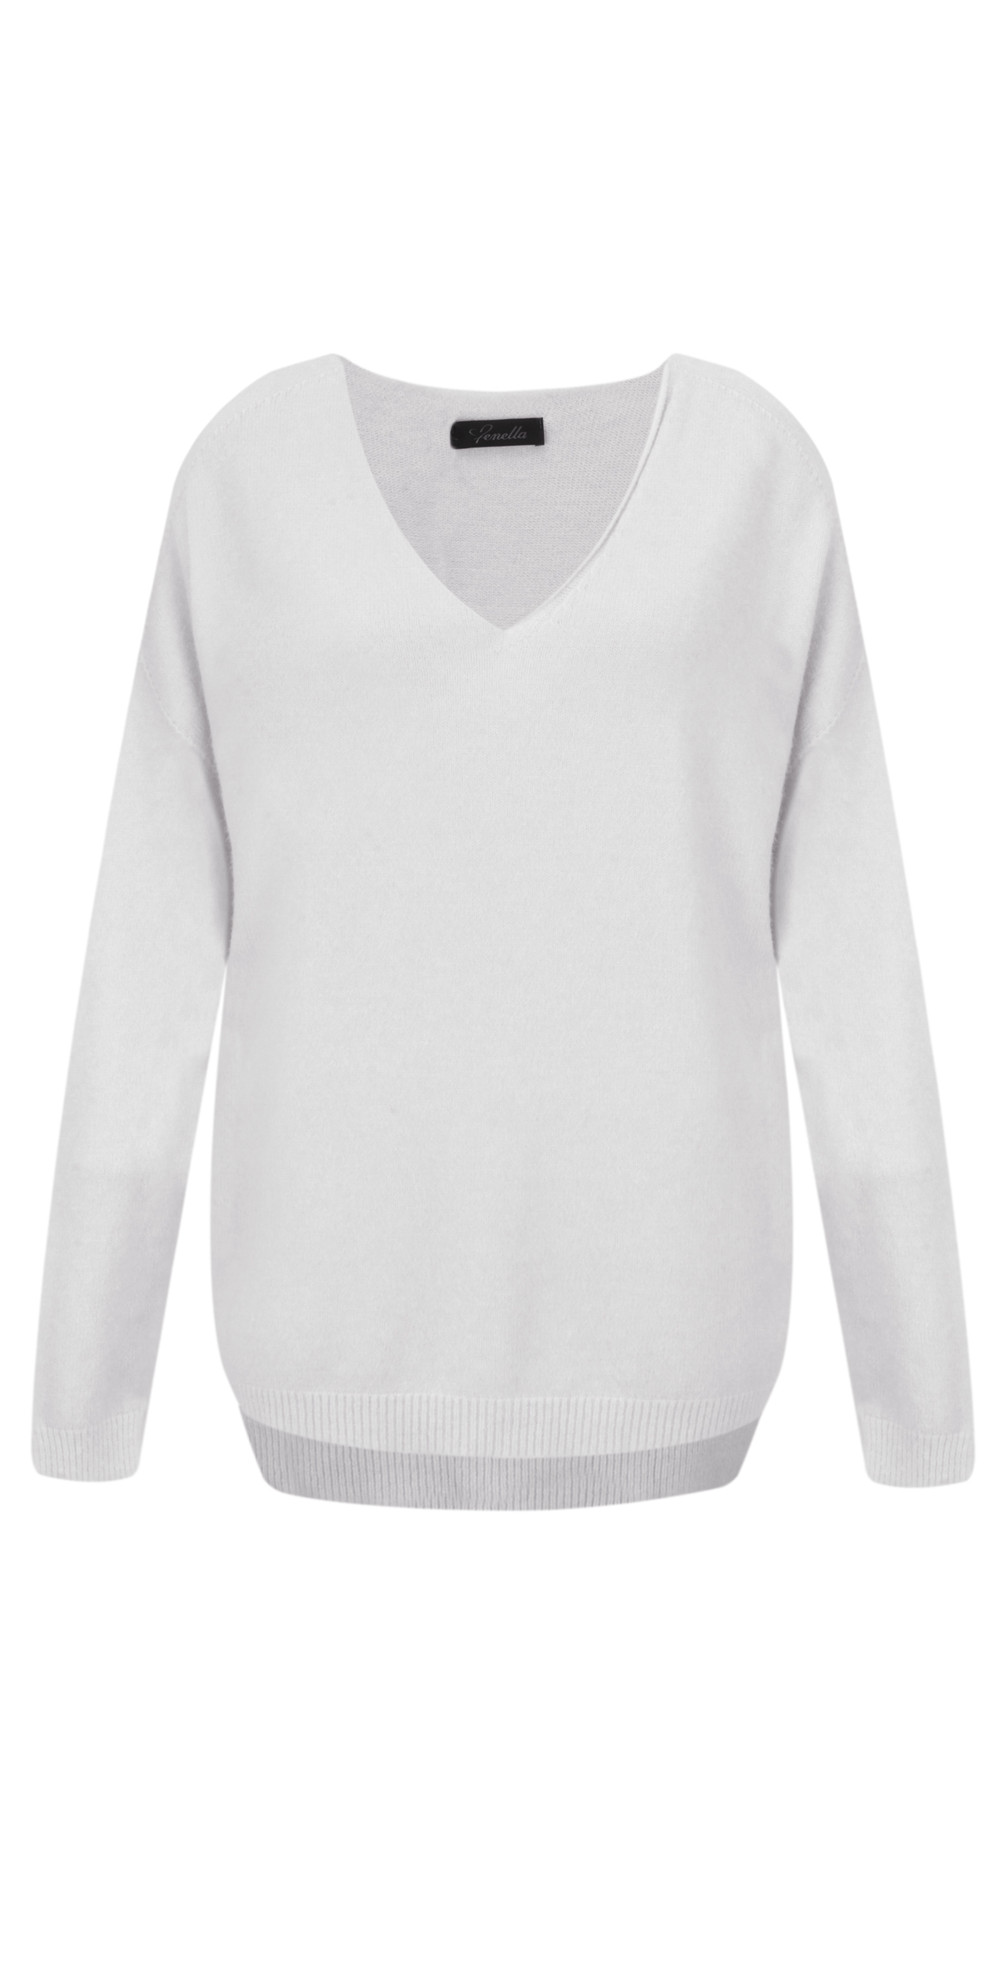 Emmie EasyFit V-neck Knit Jumper main image